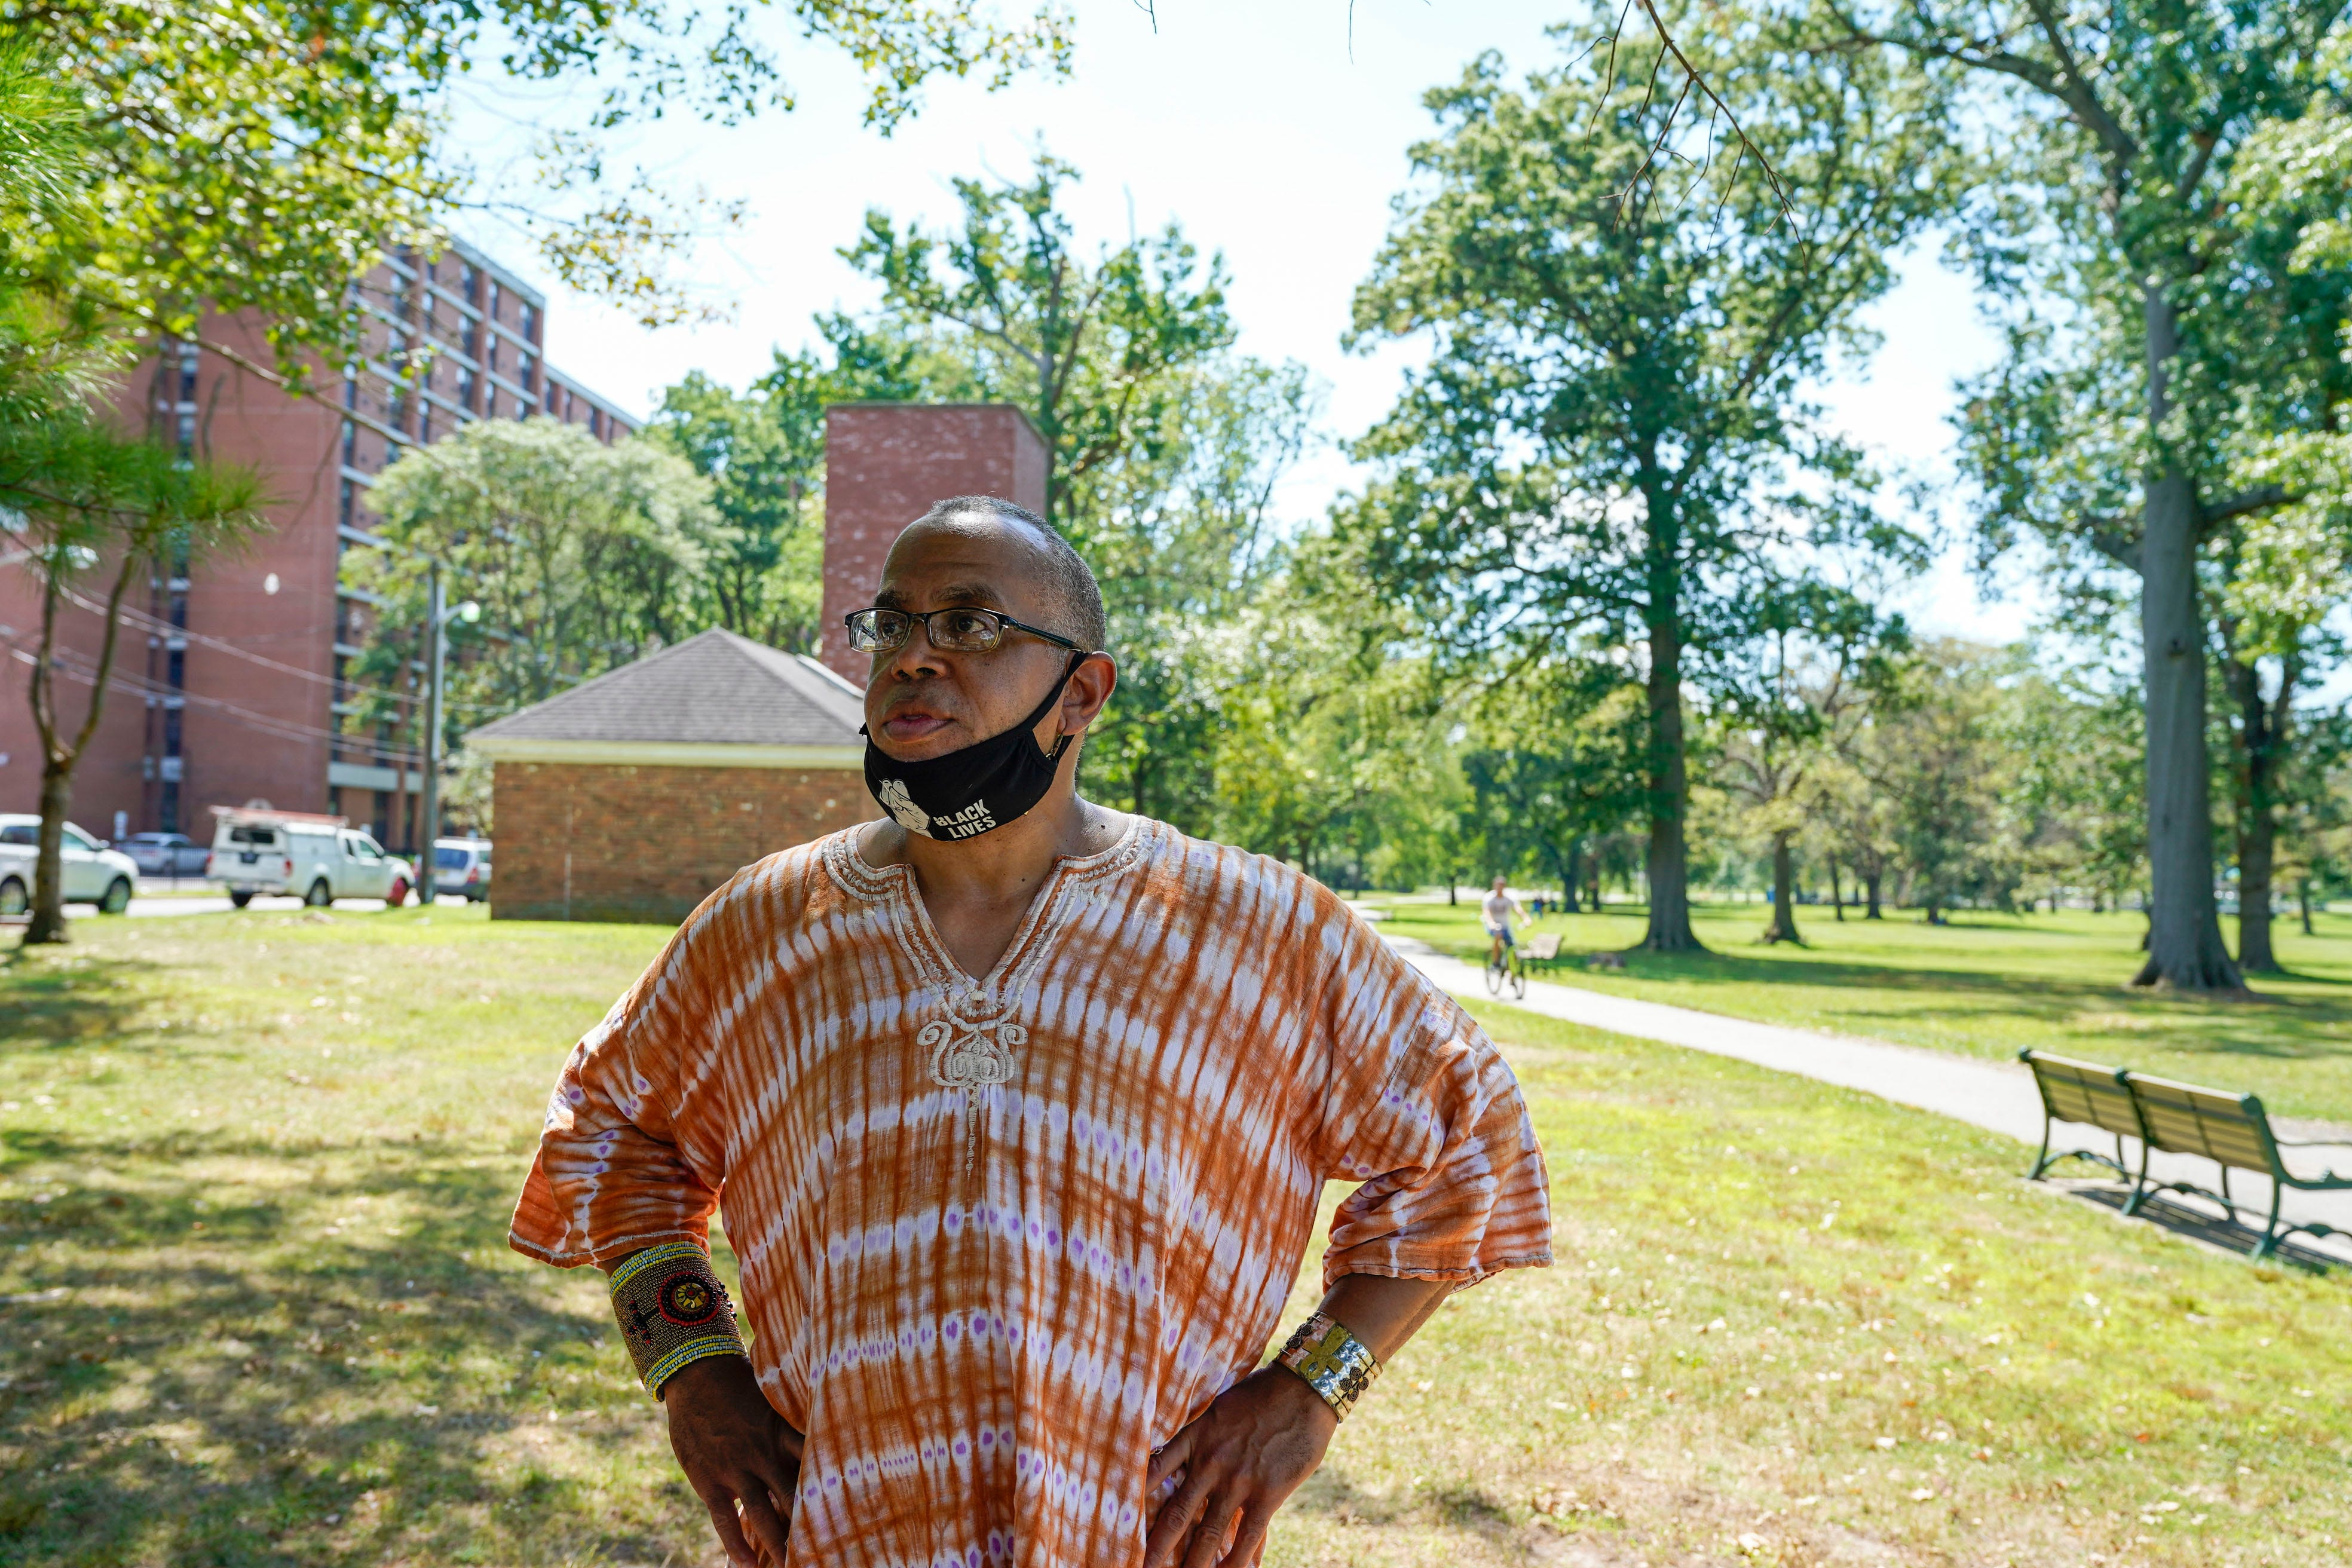 Zayid Muhammad, a community activist, talks about the battle communities of color have faced during the COVID-19 pandemic, with high case counts and deaths in Newark, N.J., the most populous city in the state and the heart of Essex county.